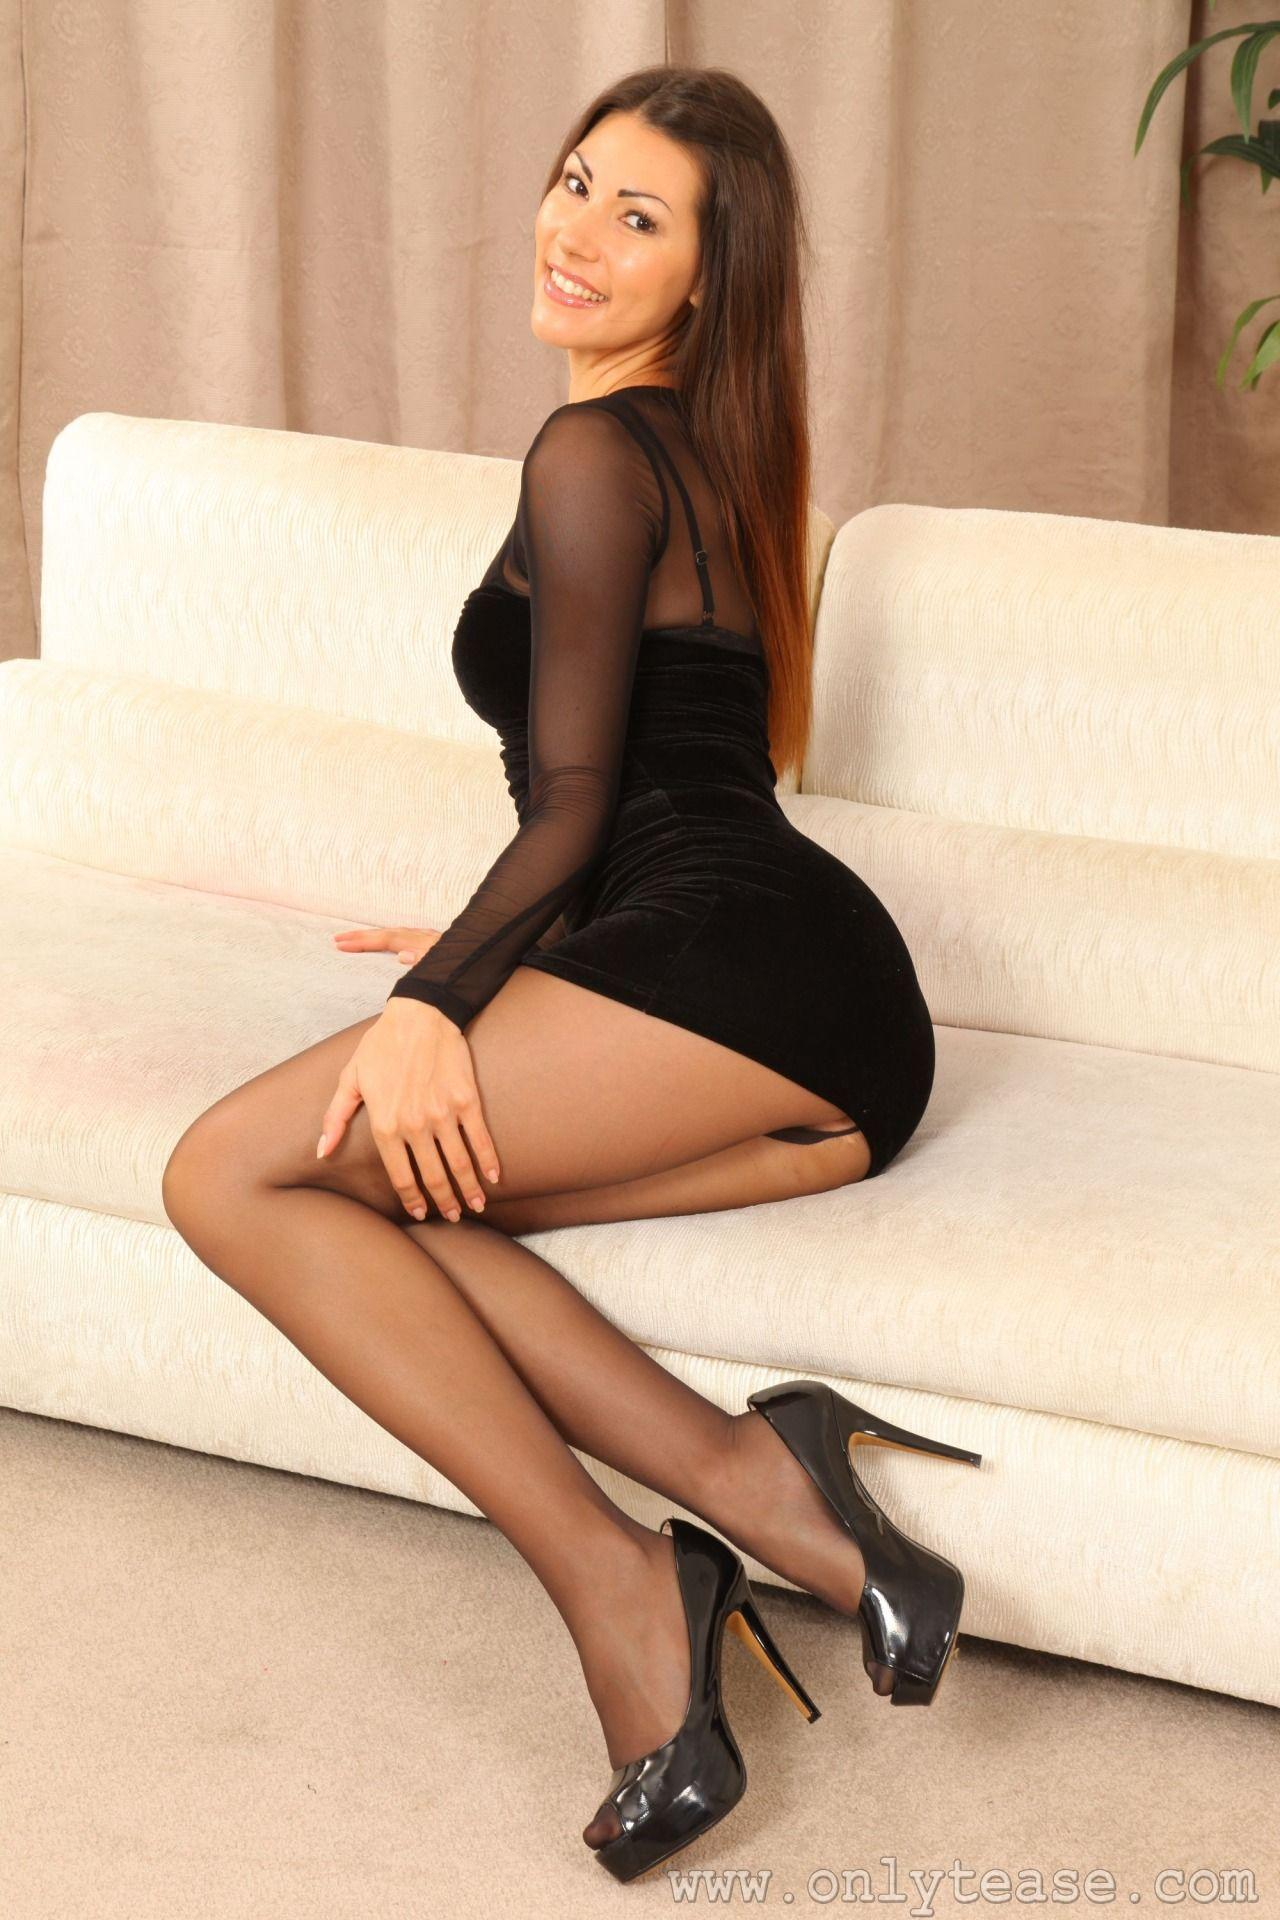 Consider, Pantyhose mini skirt